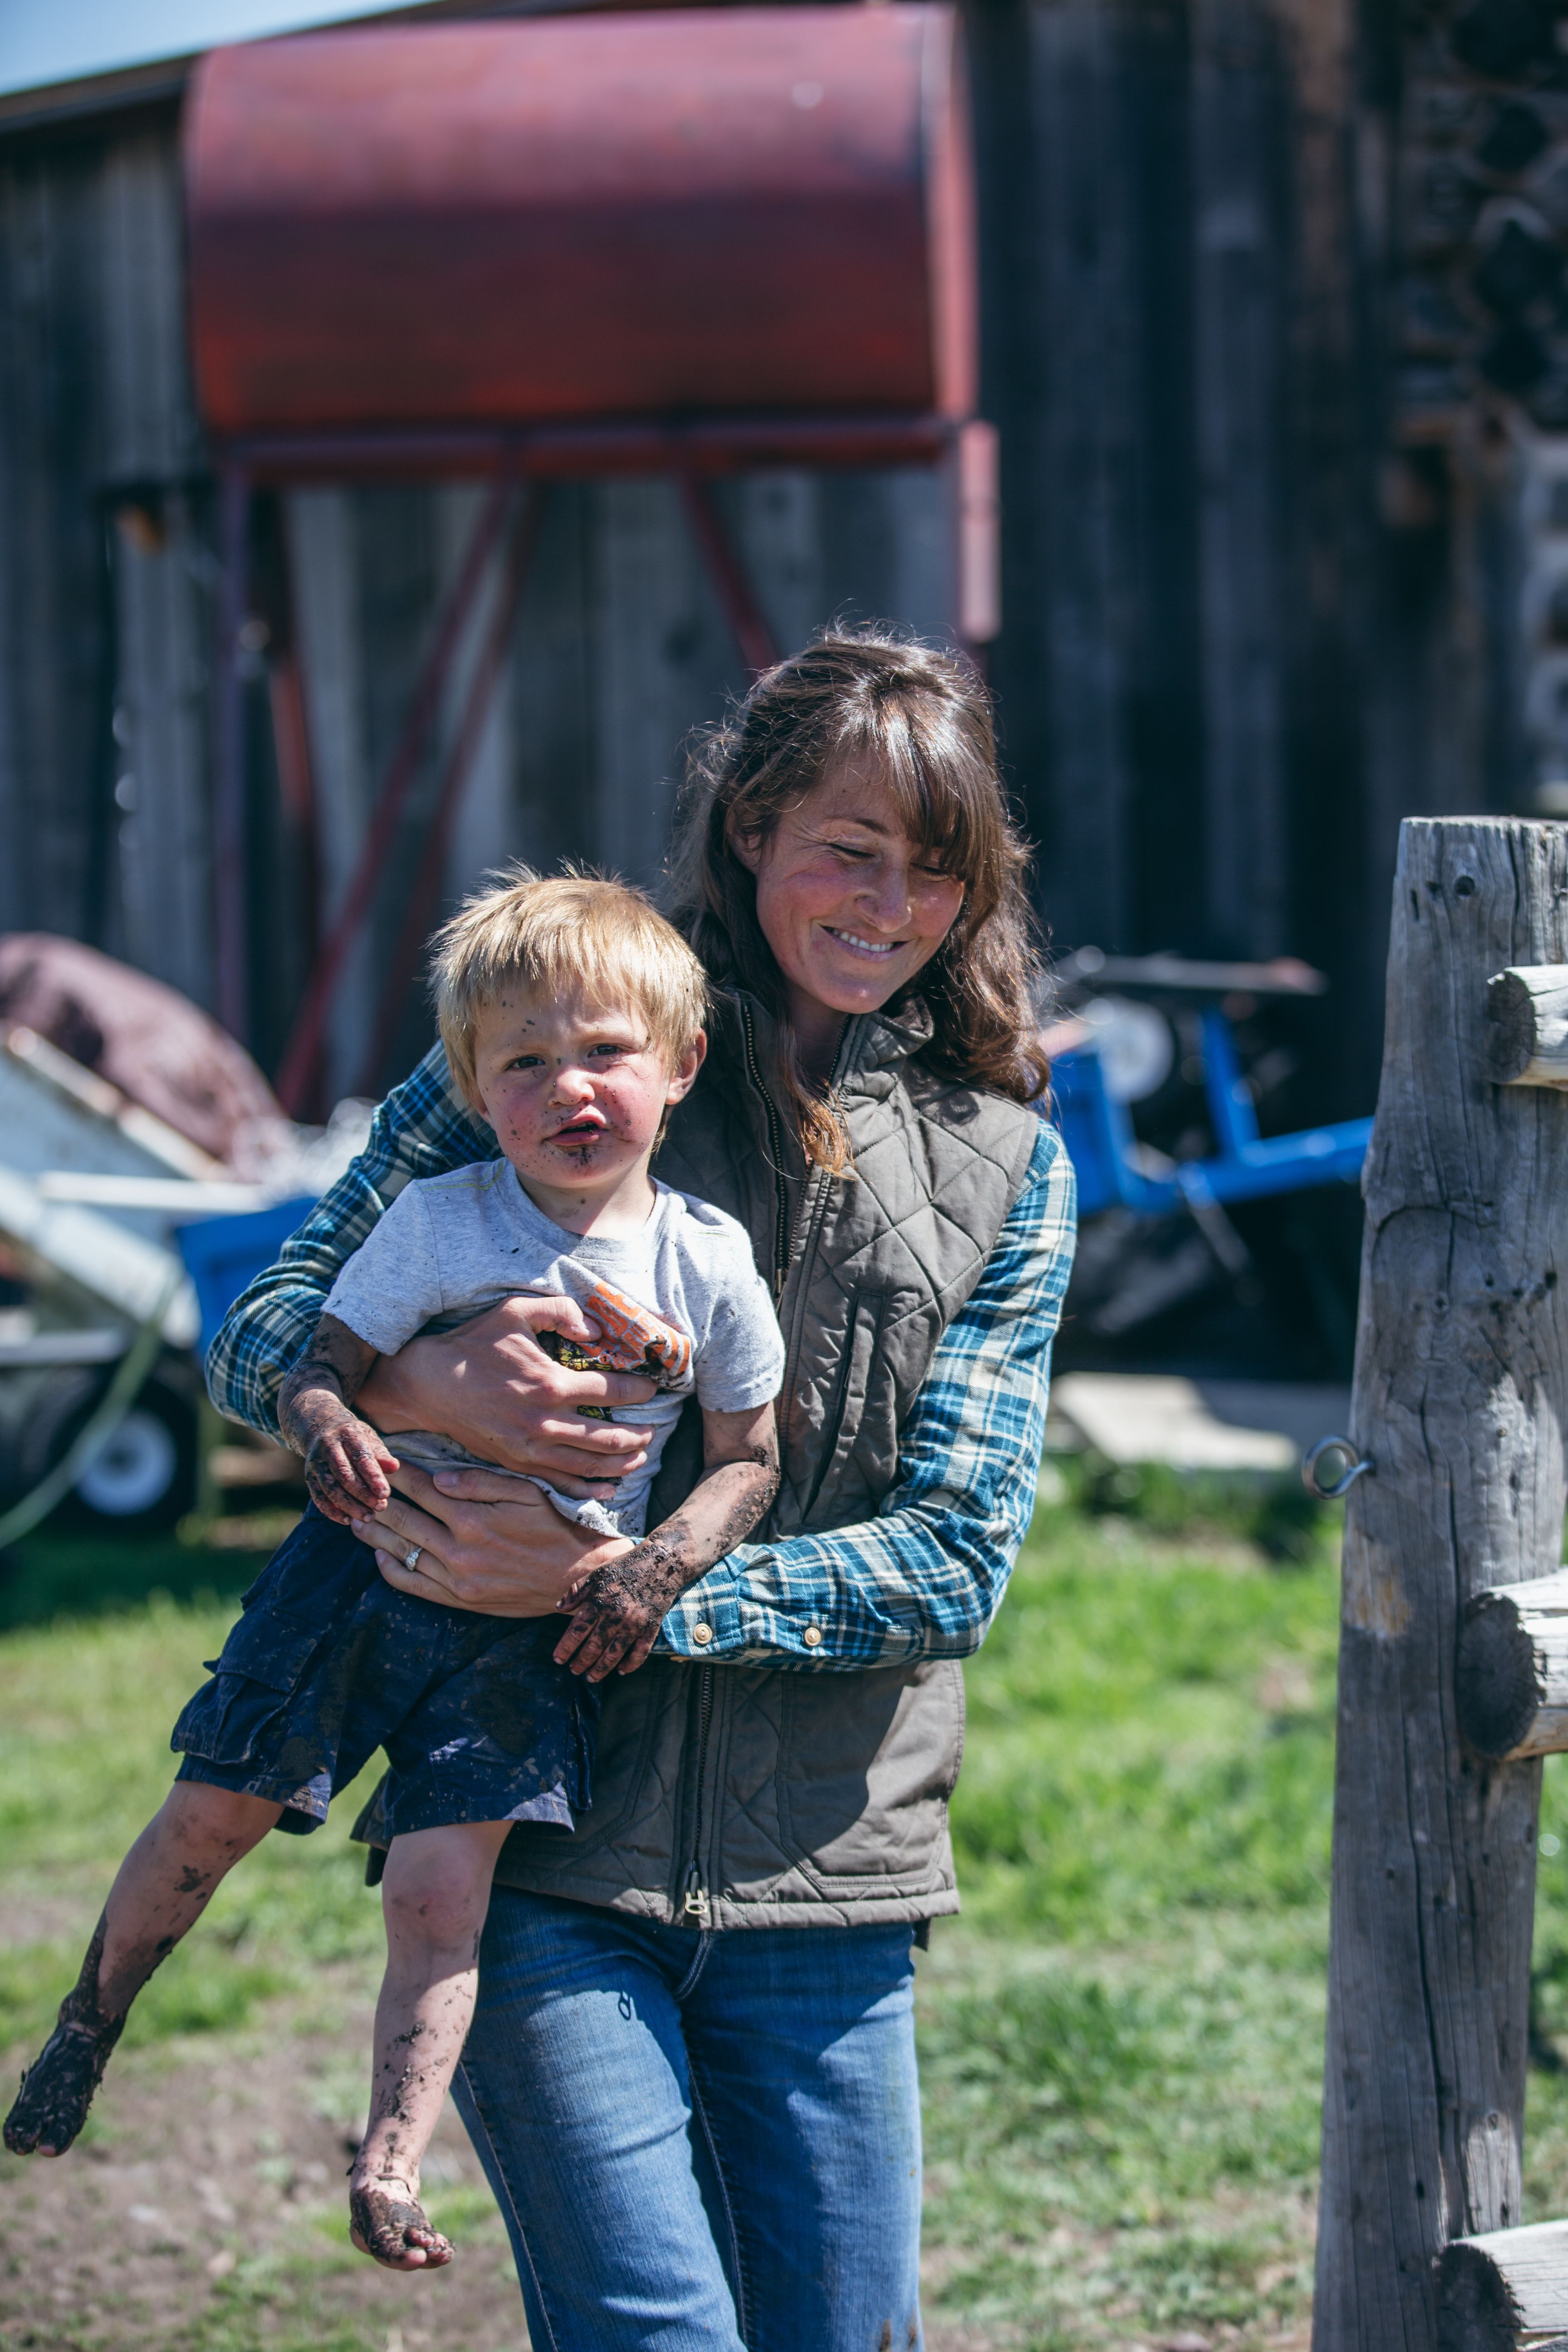 Find Gifts For Mom This Mother S Day At Filson Shop The